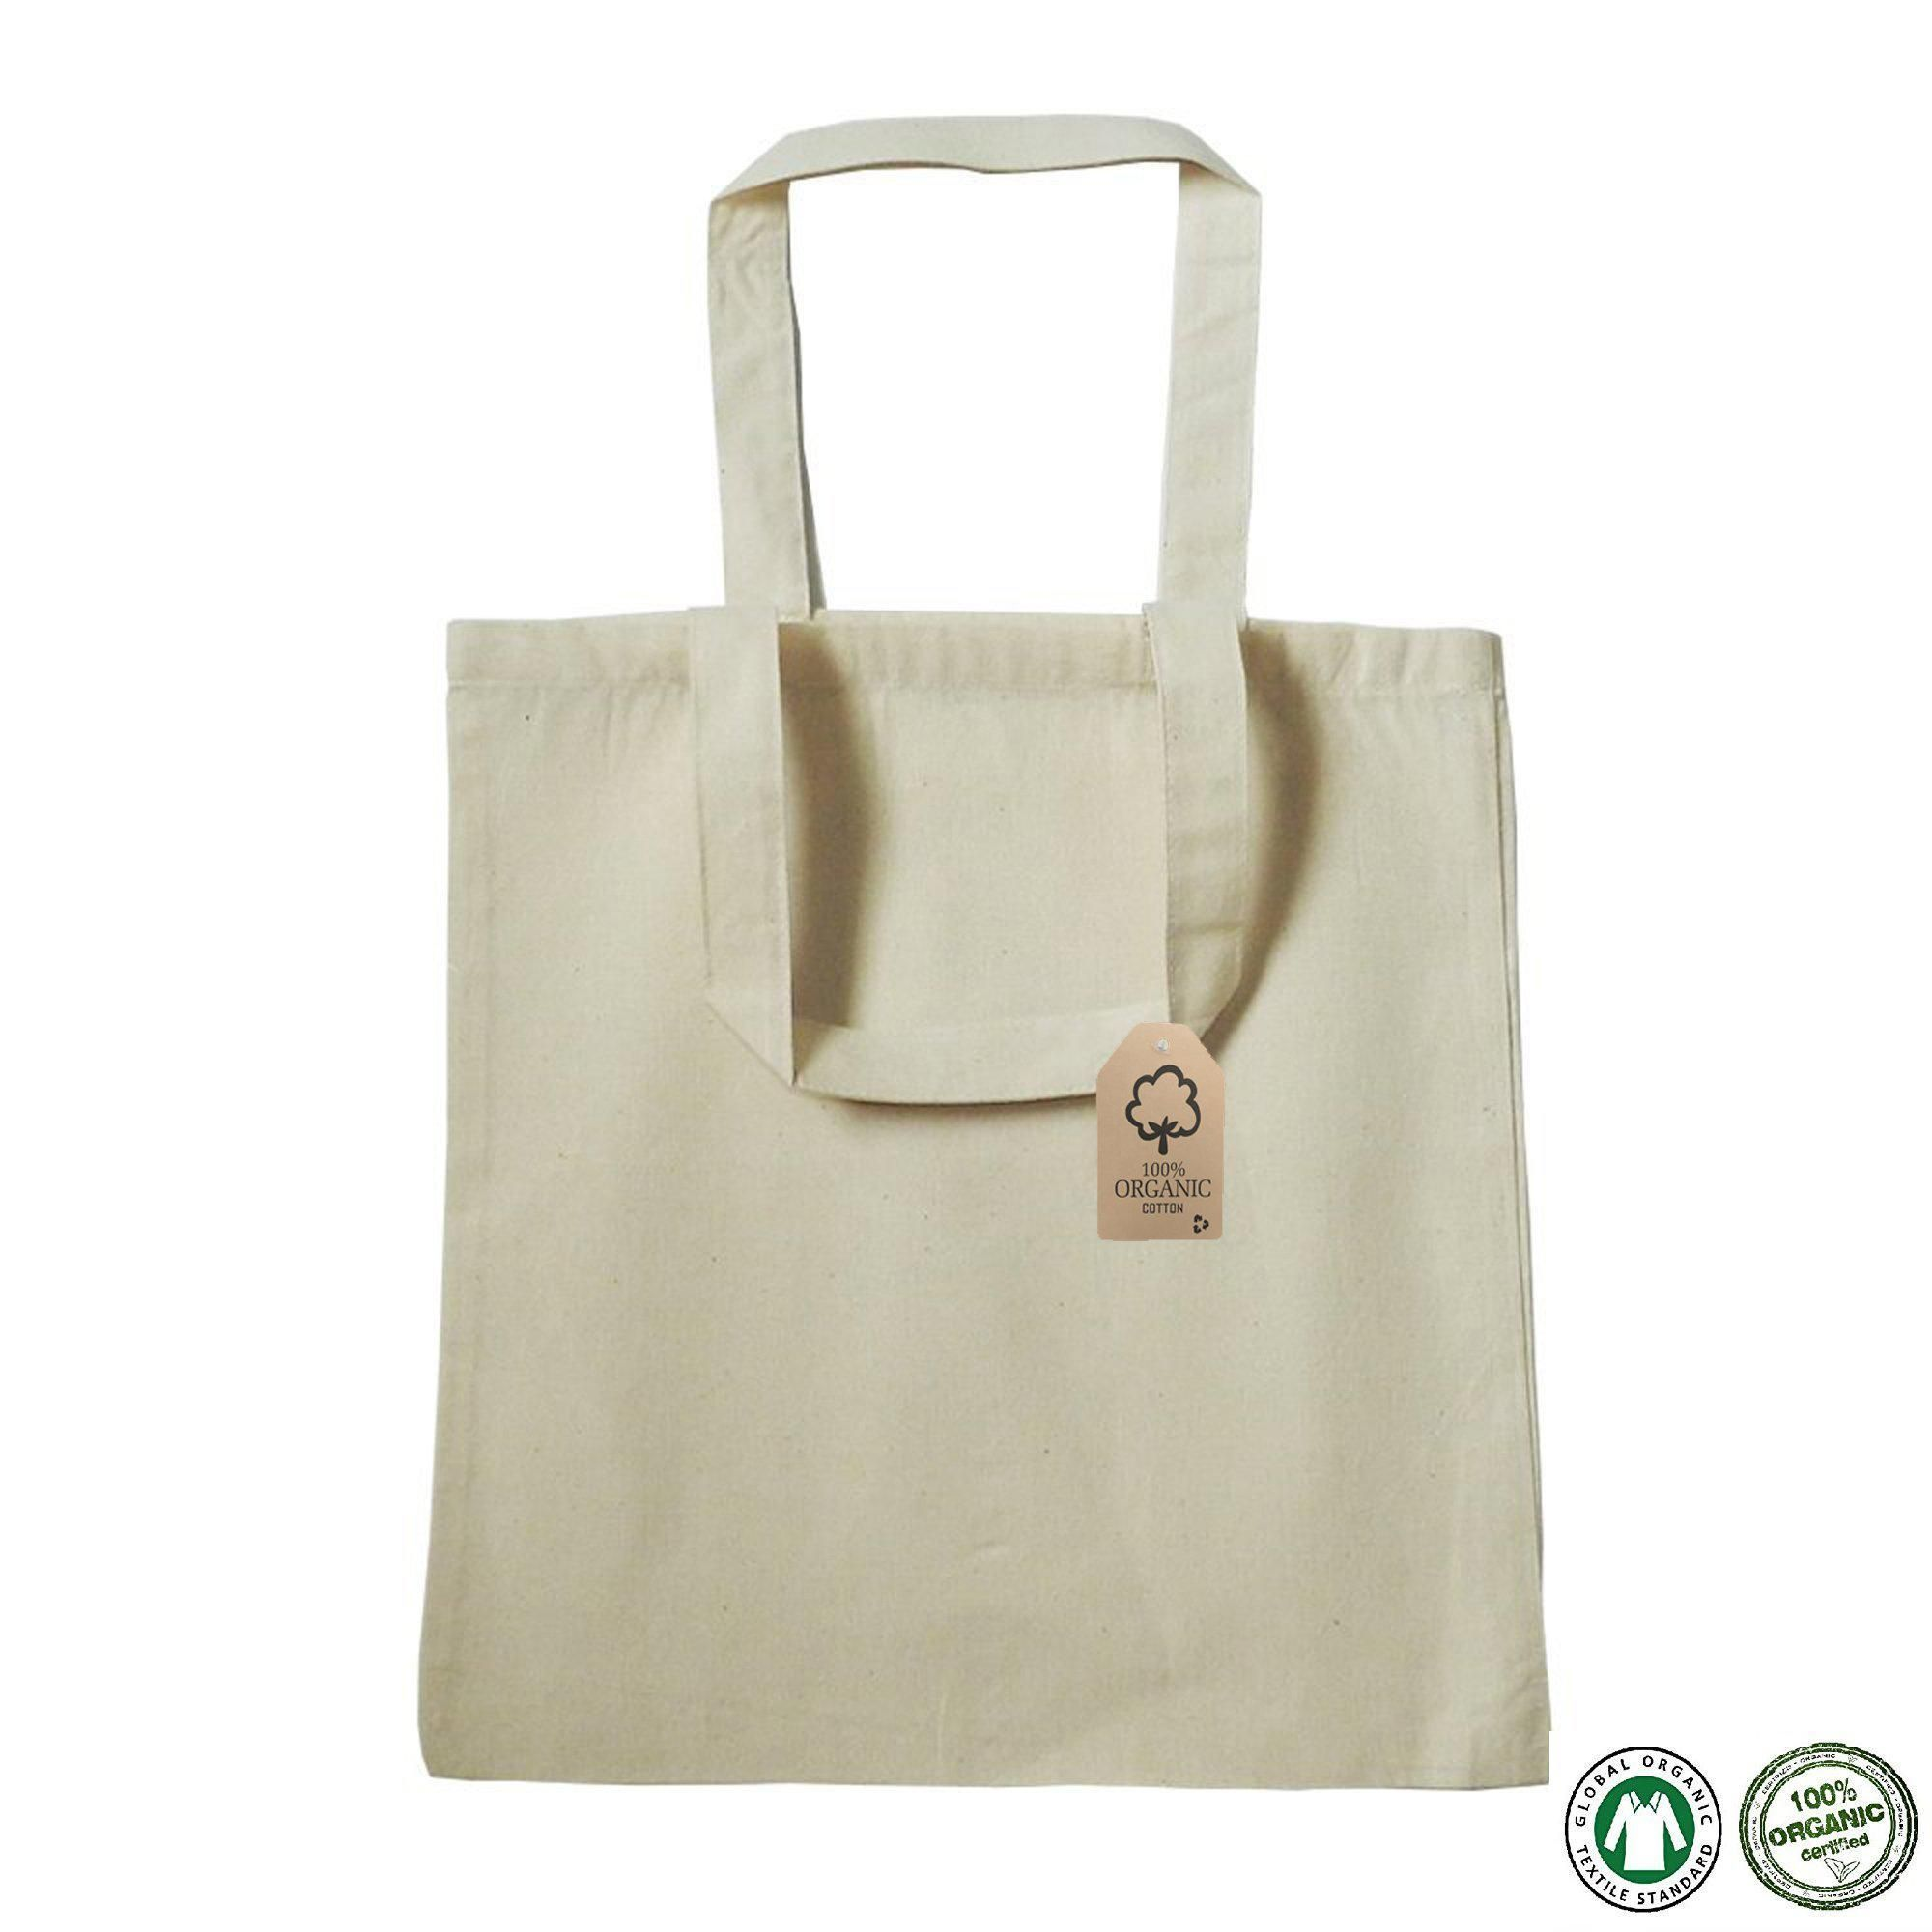 Certified Organic Cotton Tote Bags Wholesale Organic